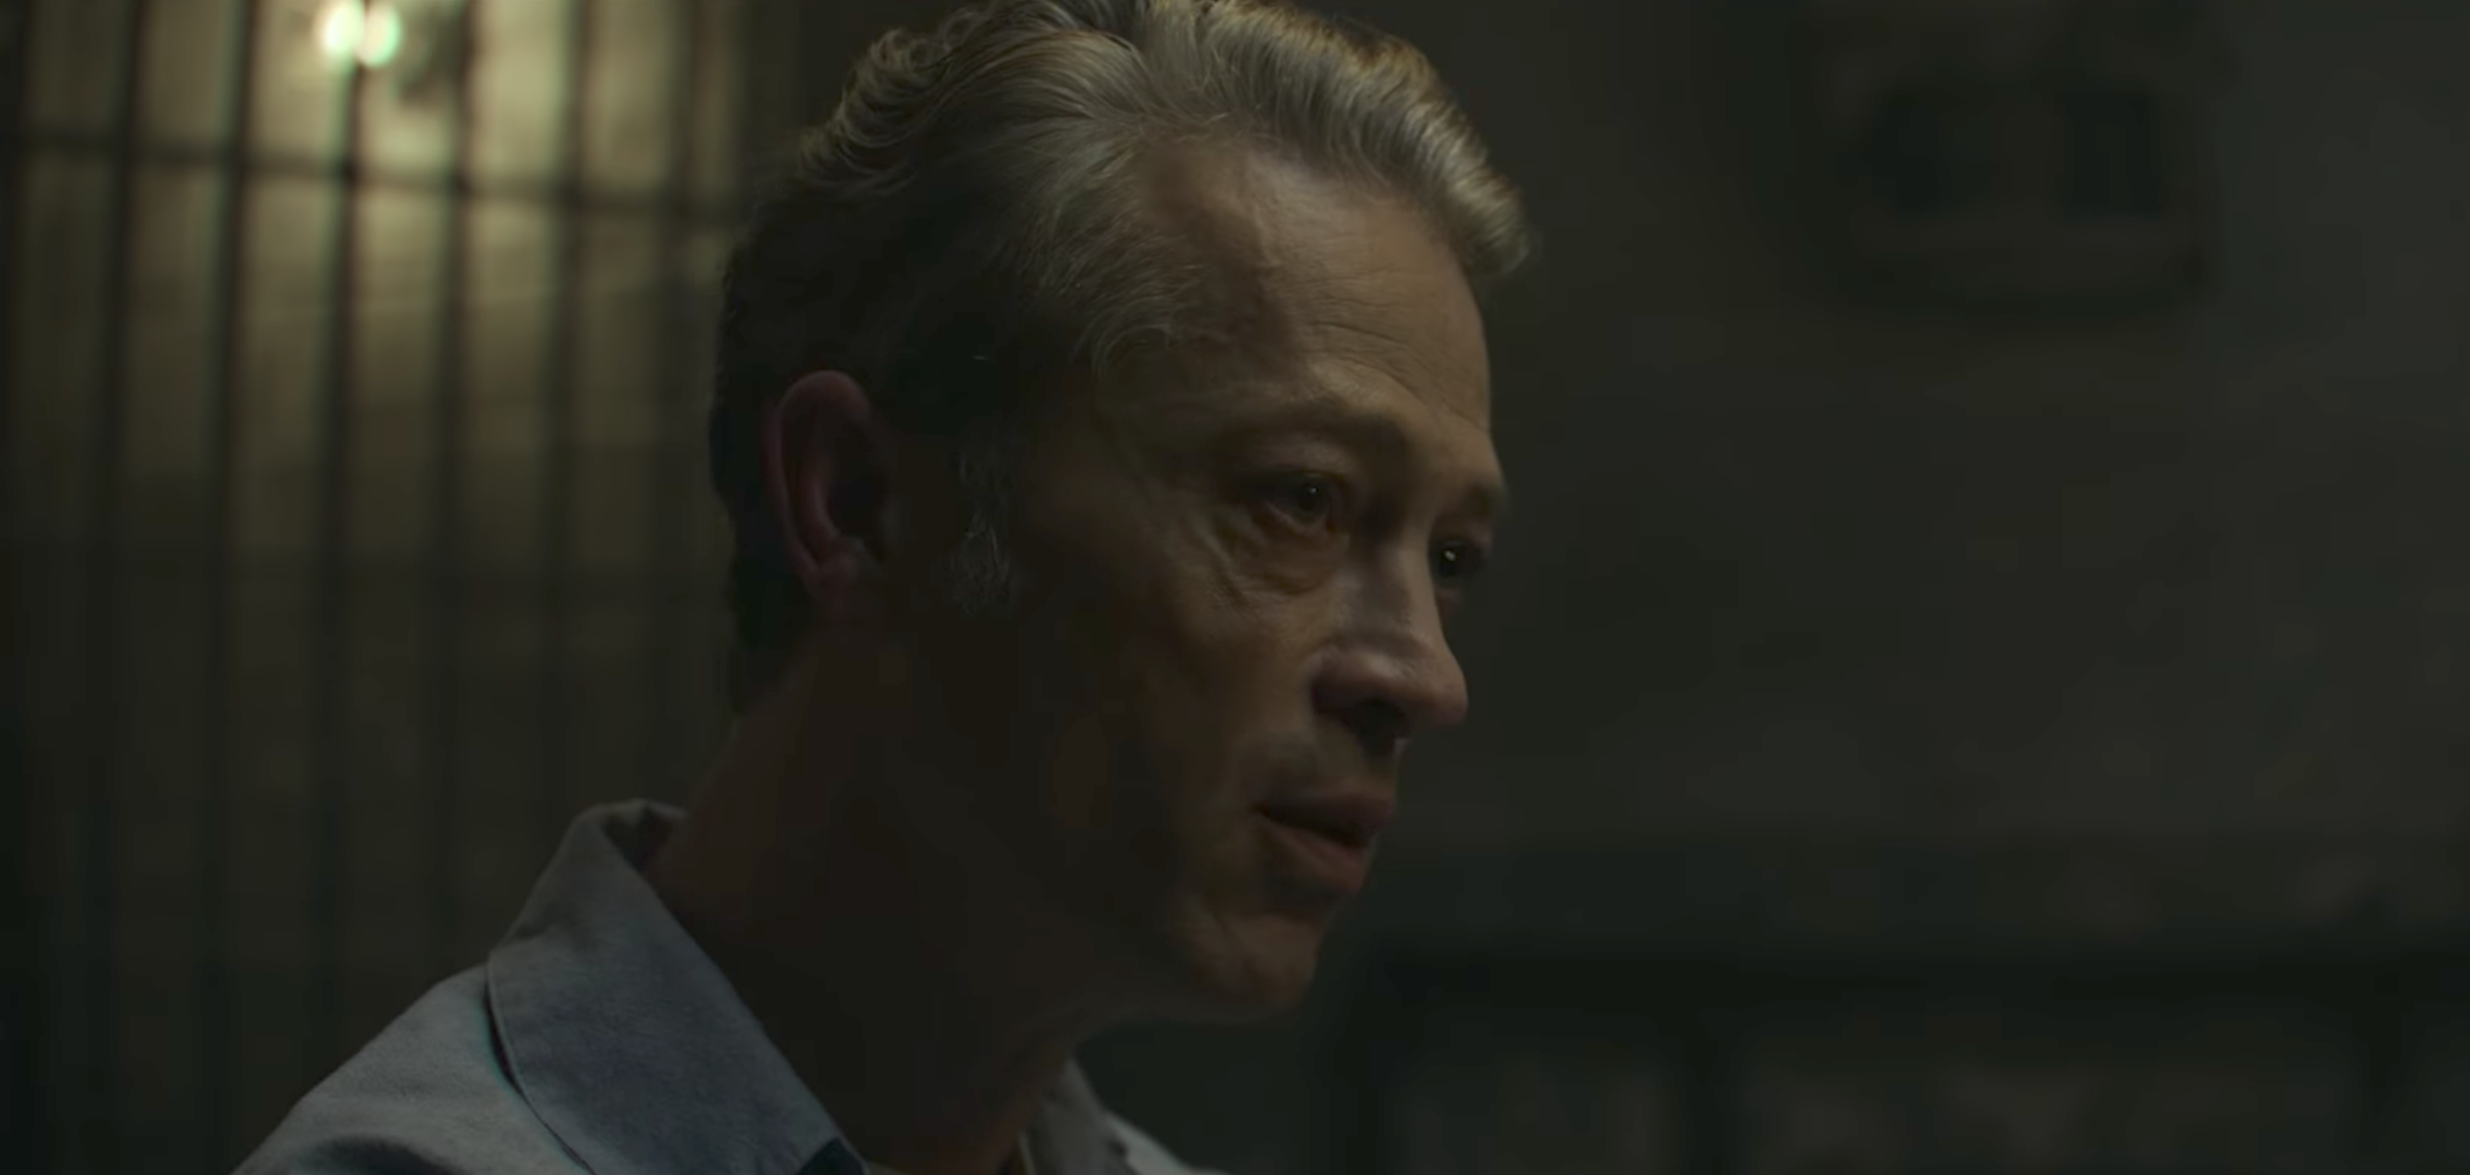 Mindhunter - Jack Erdie Season 1 Richard Speck